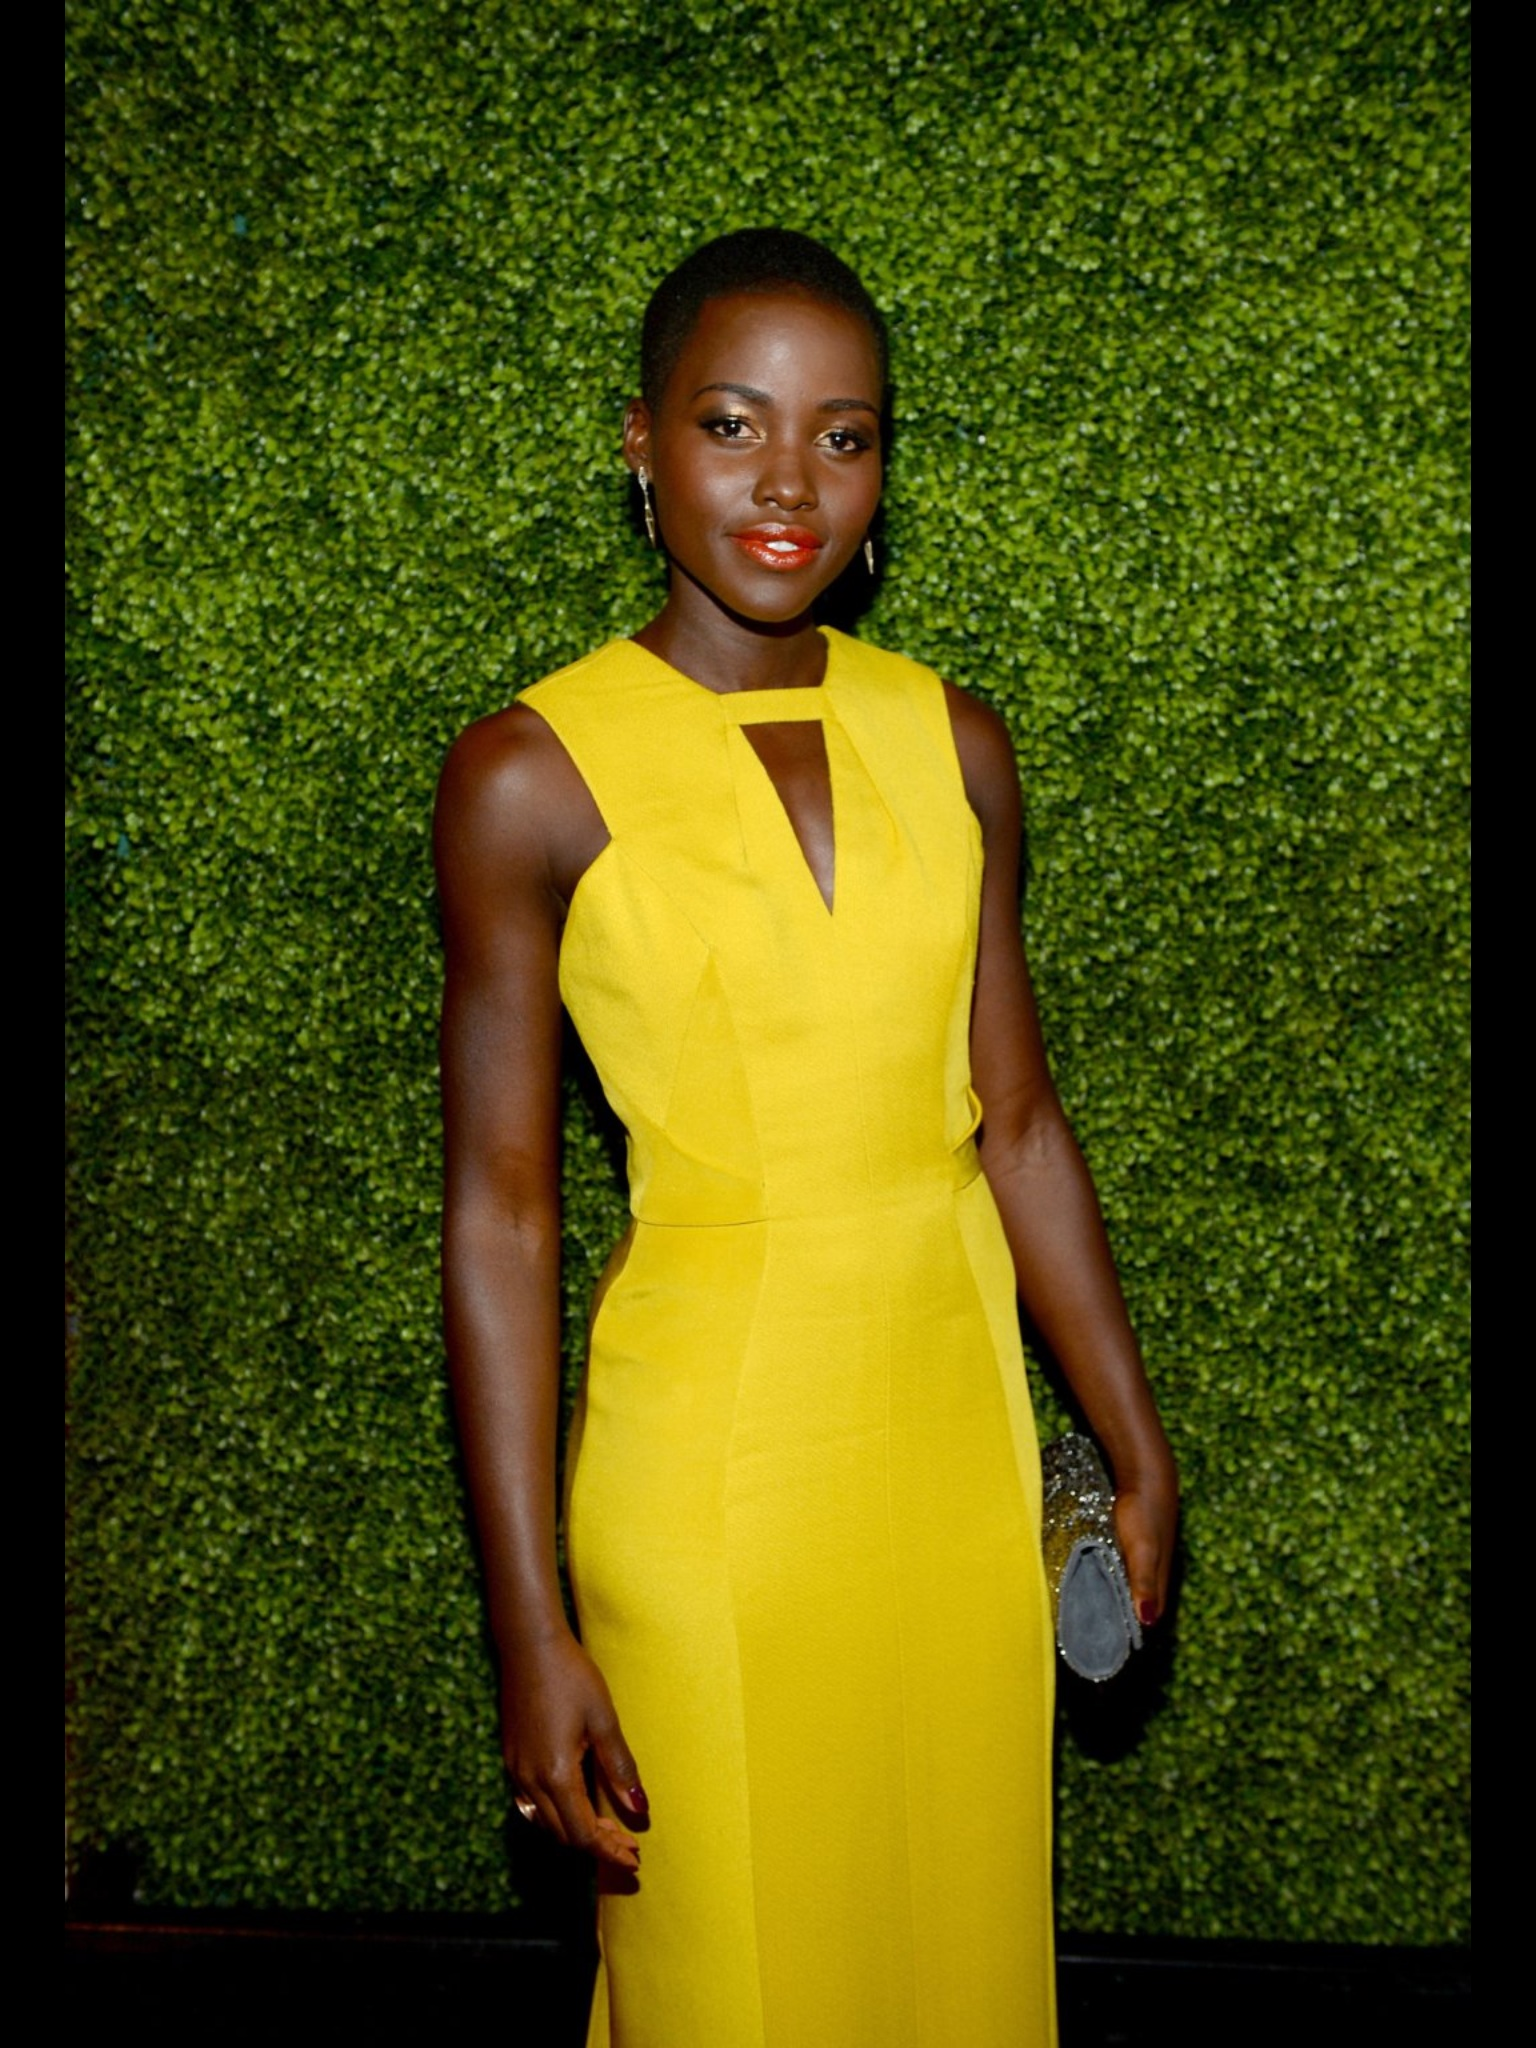 Image result for kenya female celebs in yellow dresses